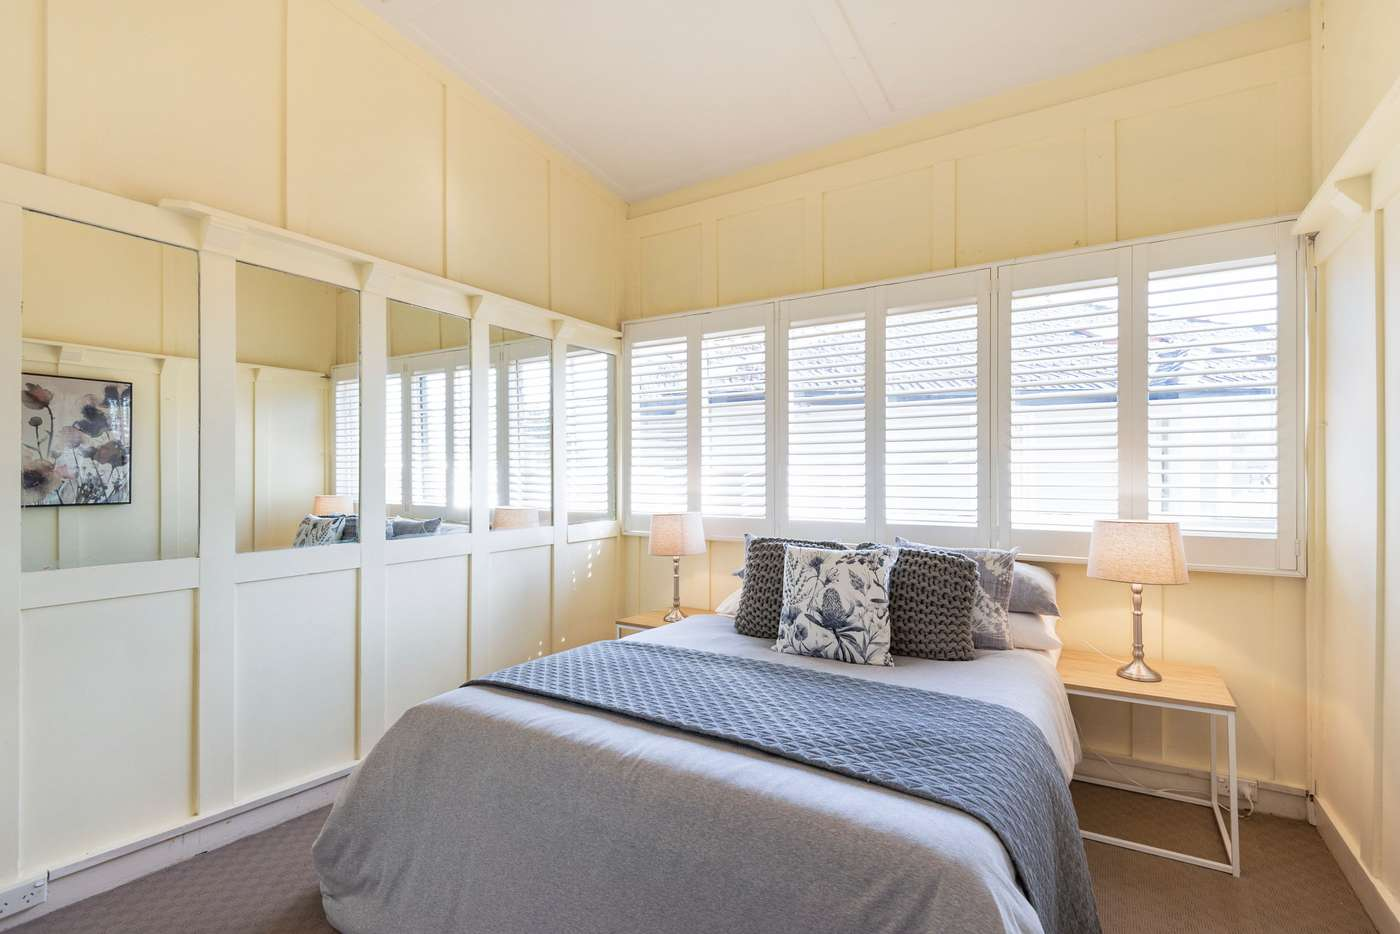 Sixth view of Homely apartment listing, 10/9 Davidson Parade, Cremorne NSW 2090